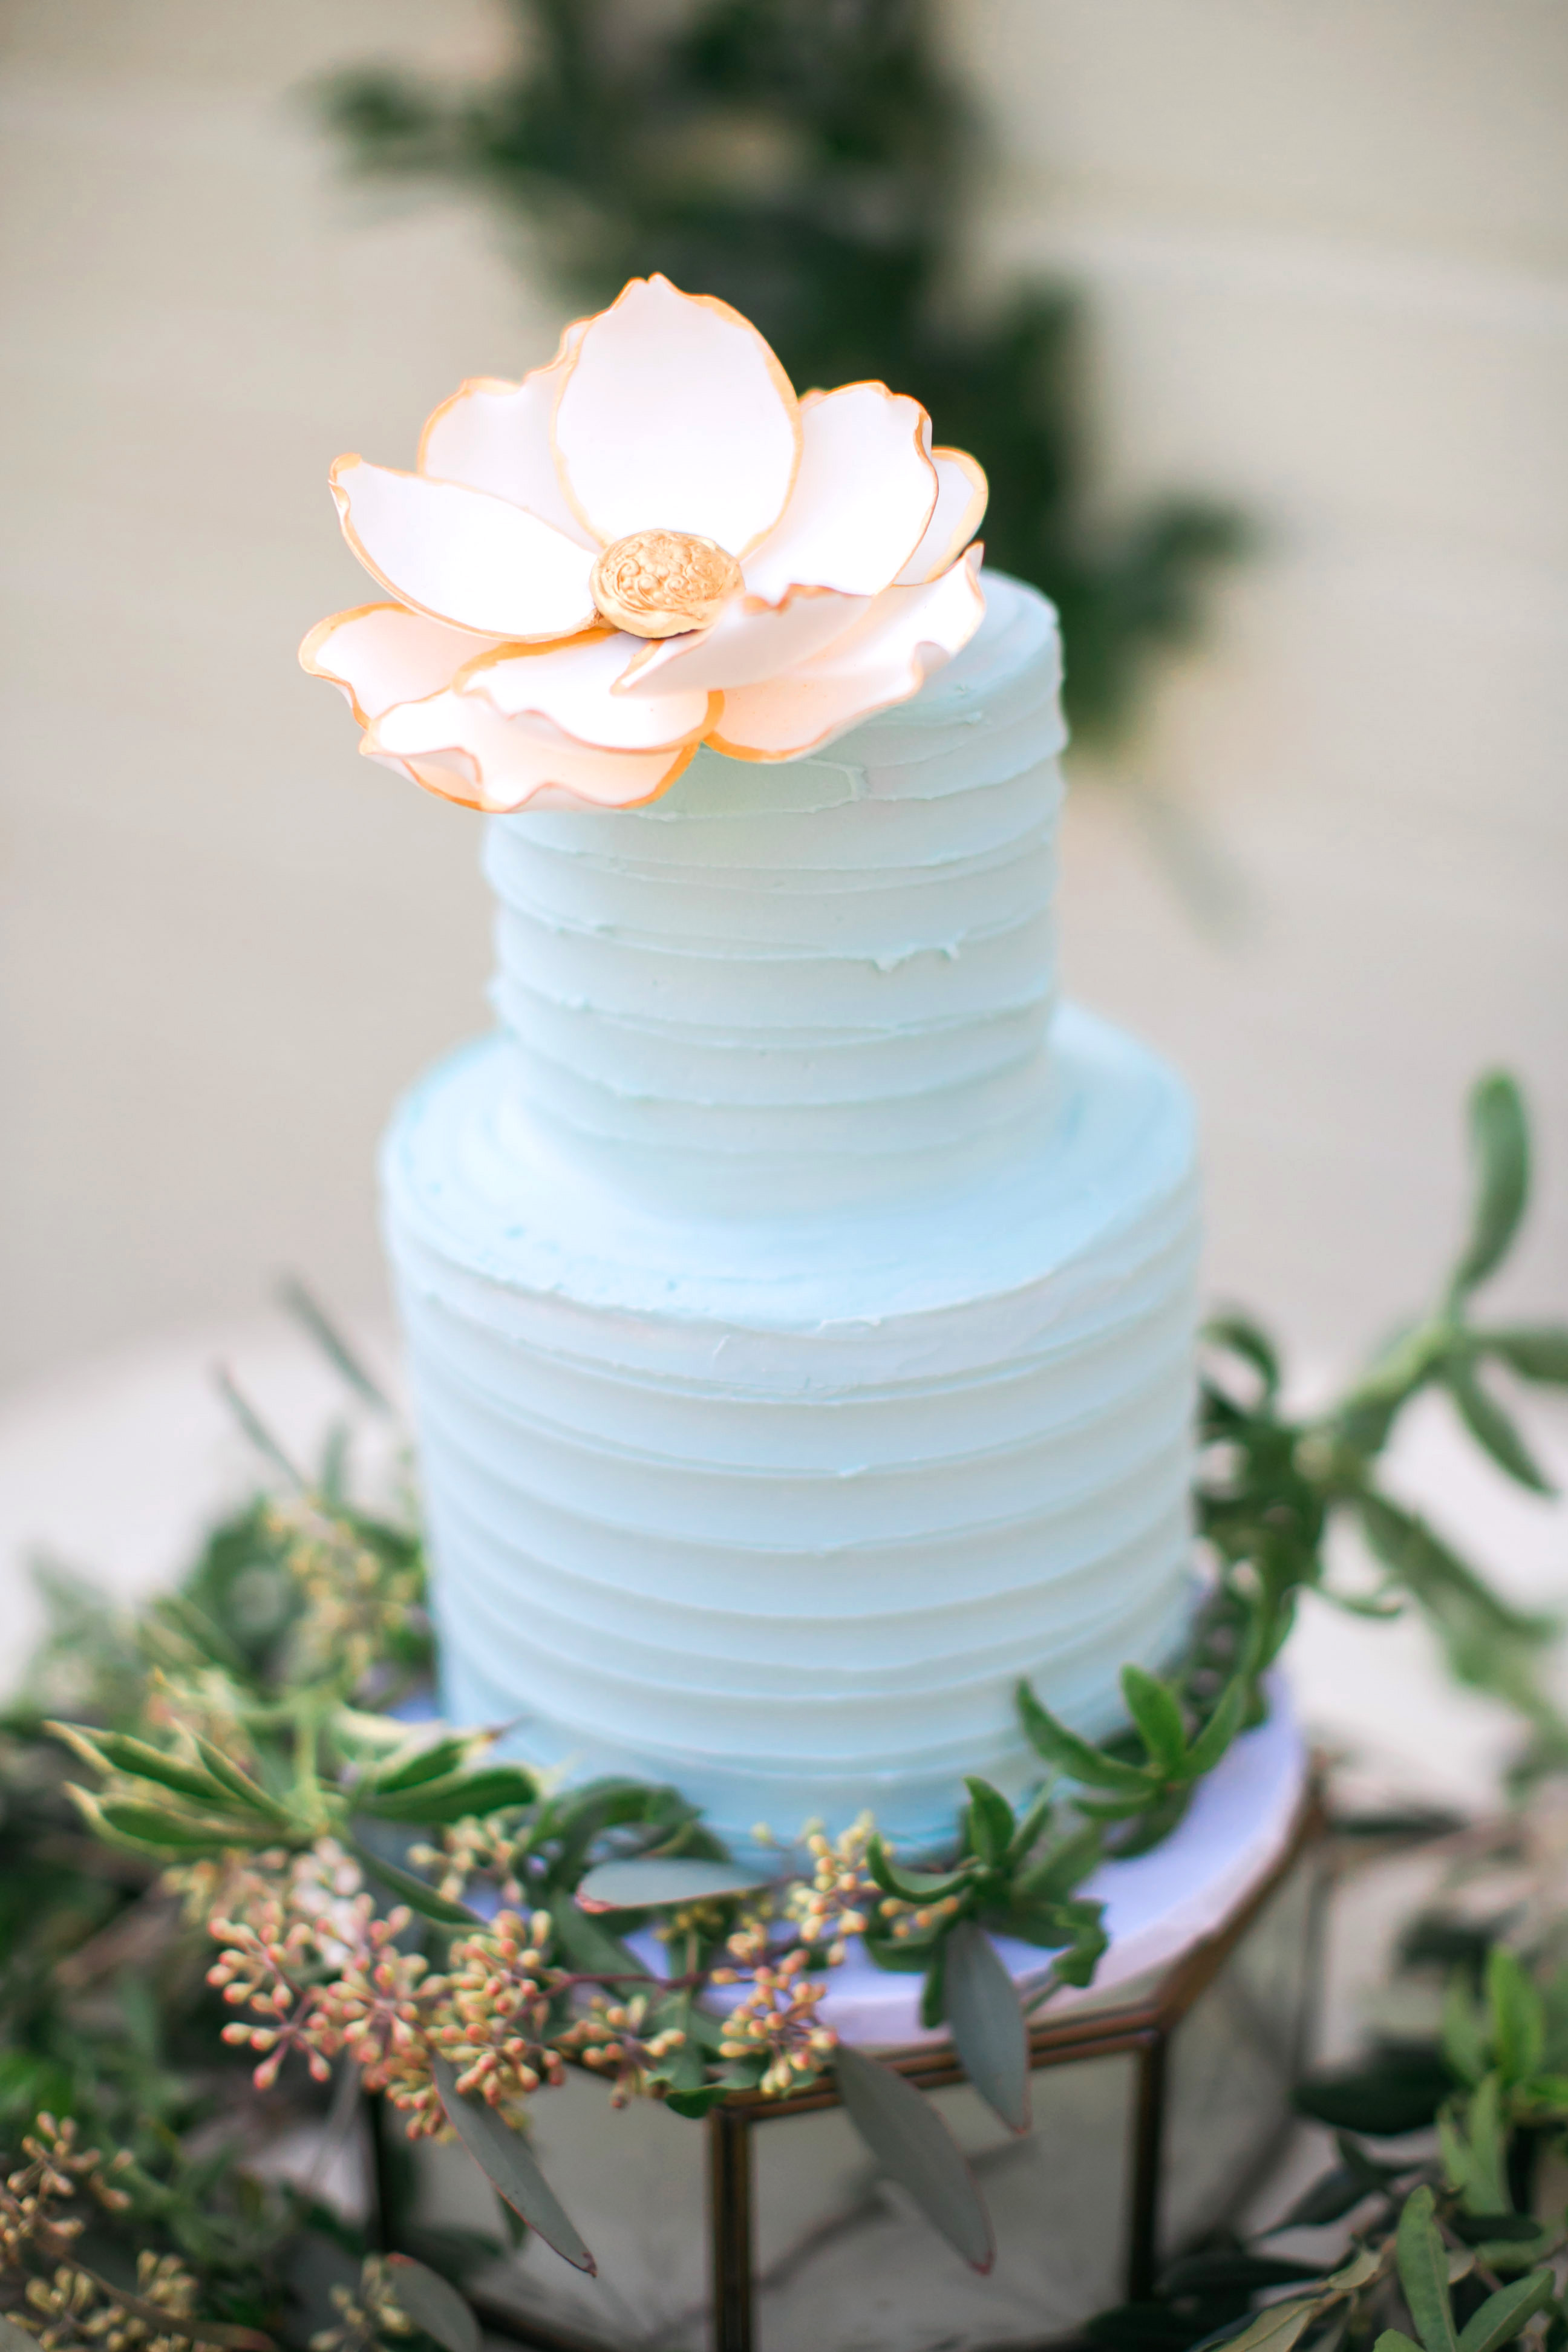 ridged cake with flower on top